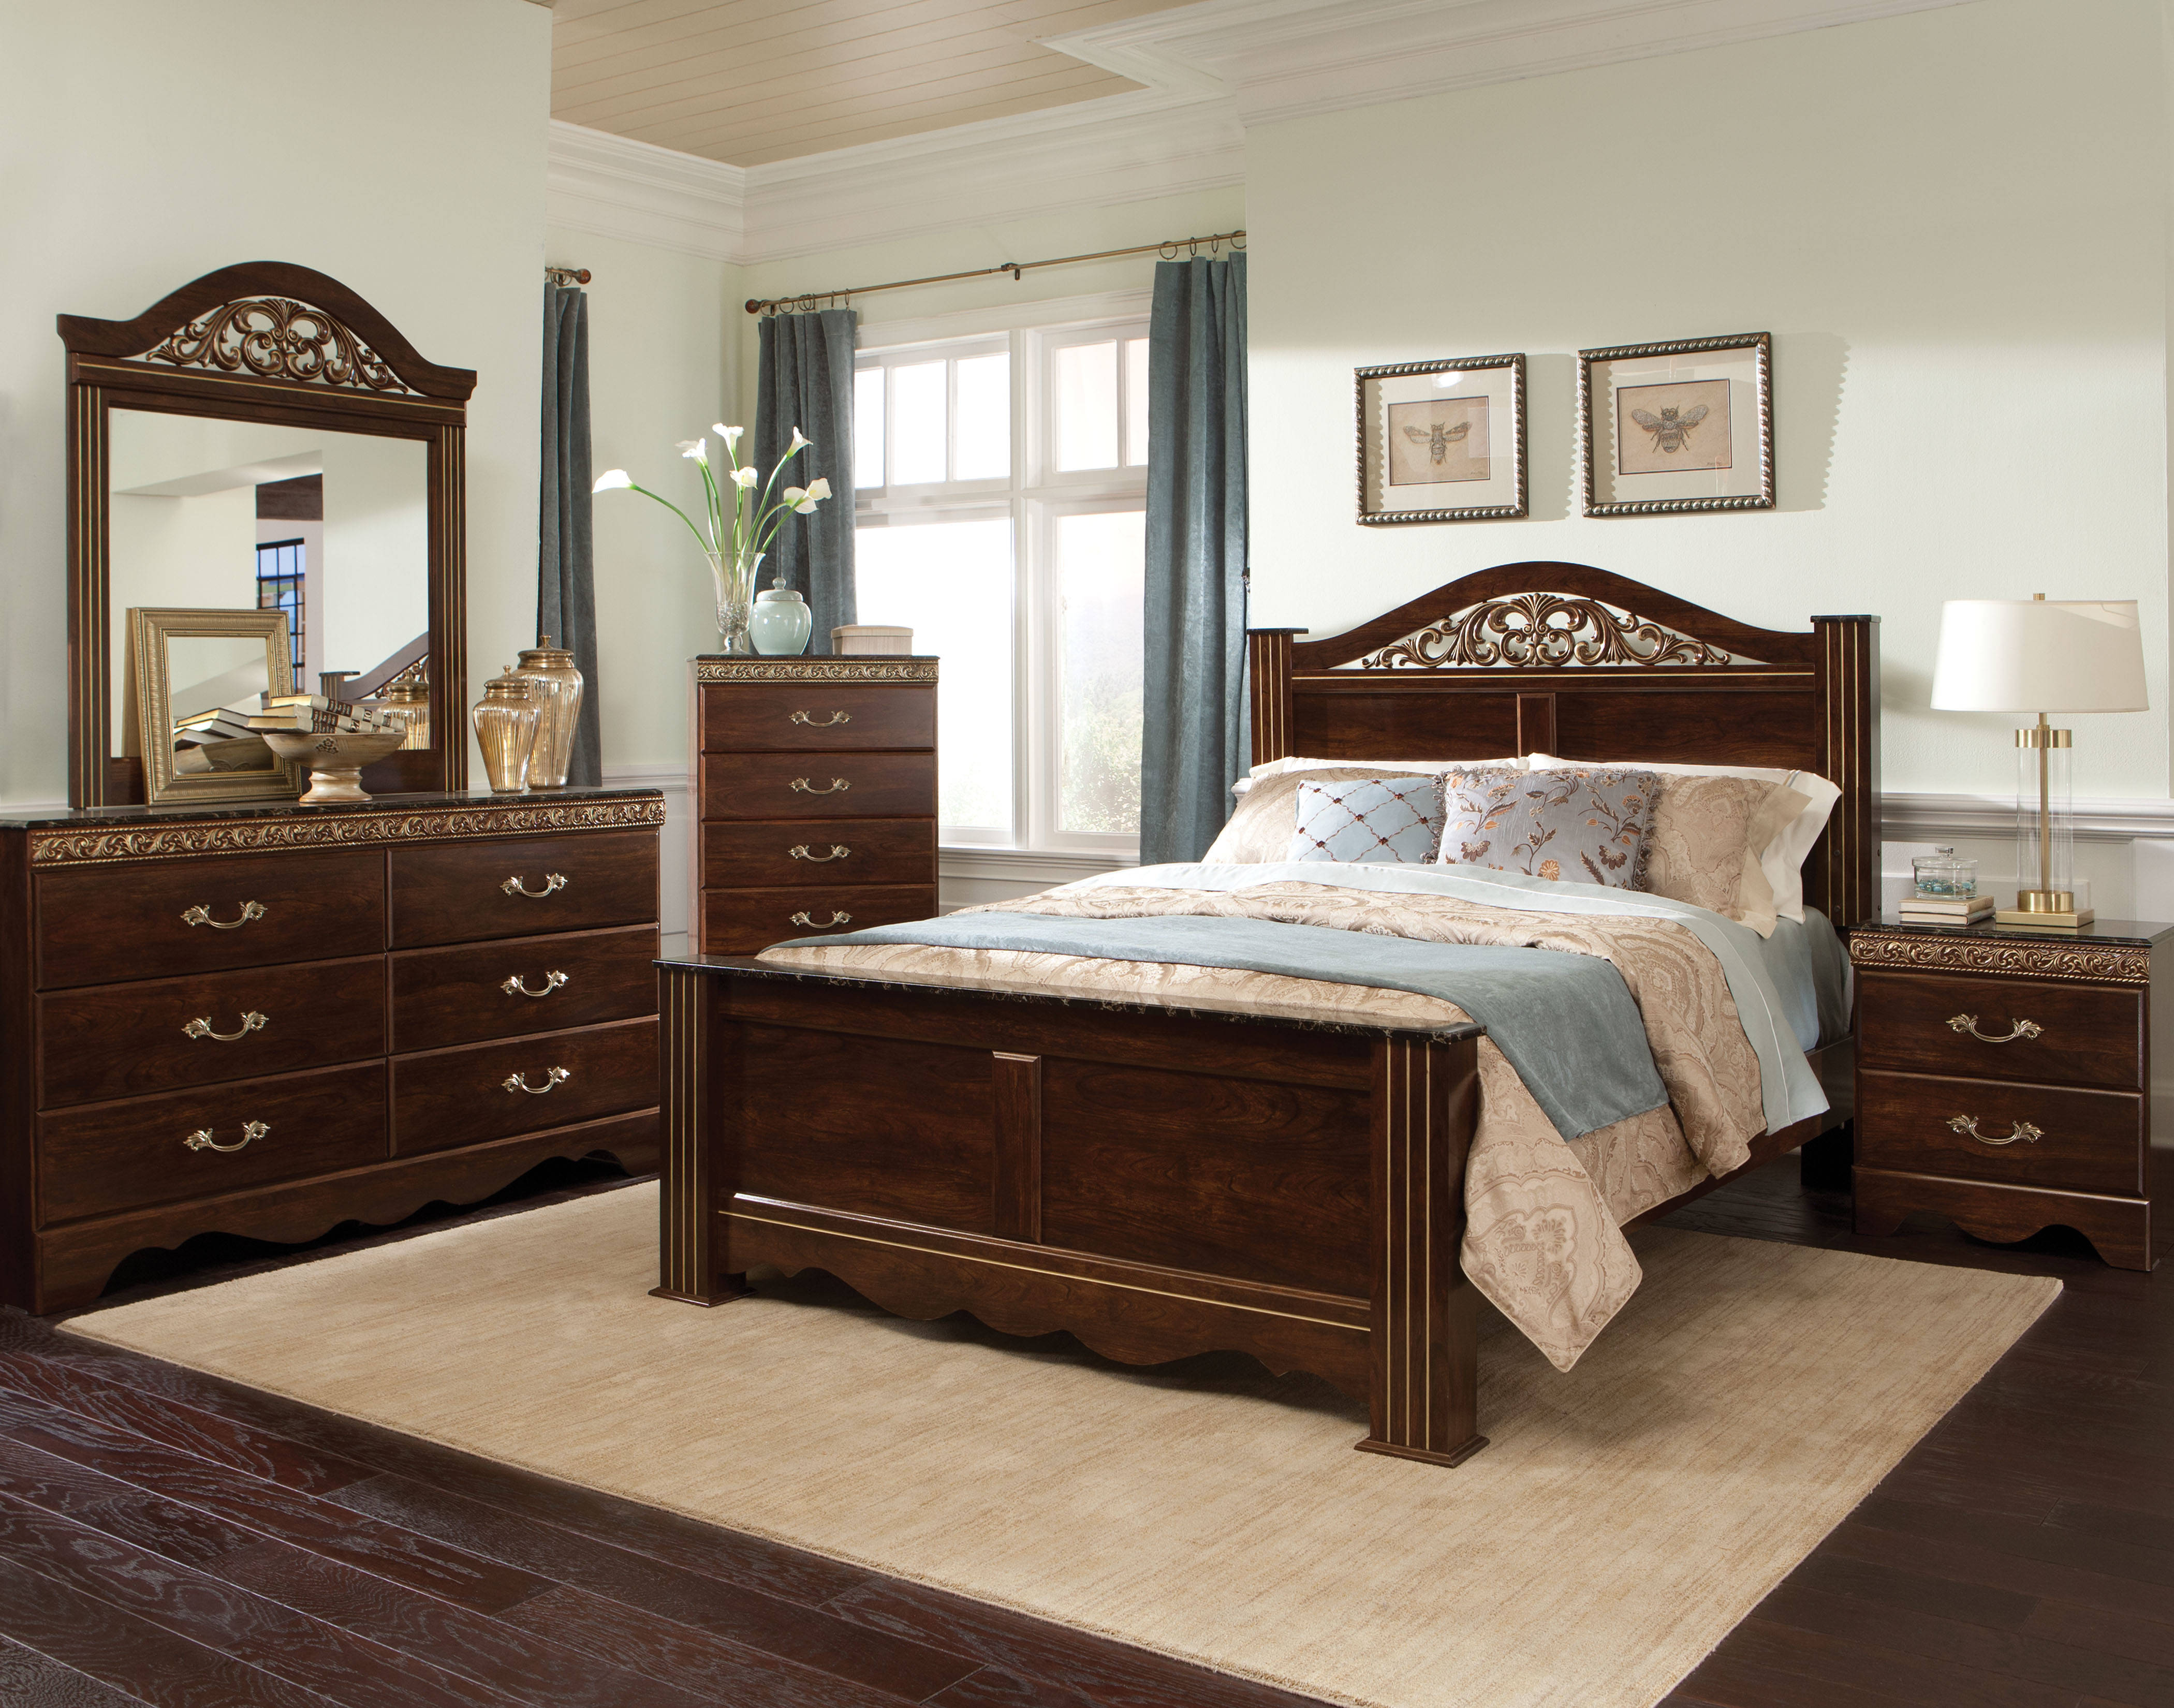 Odessa Brown Cherry Wood 5pc Bedroom Set W Full Queen Poster Bed The Classy Home